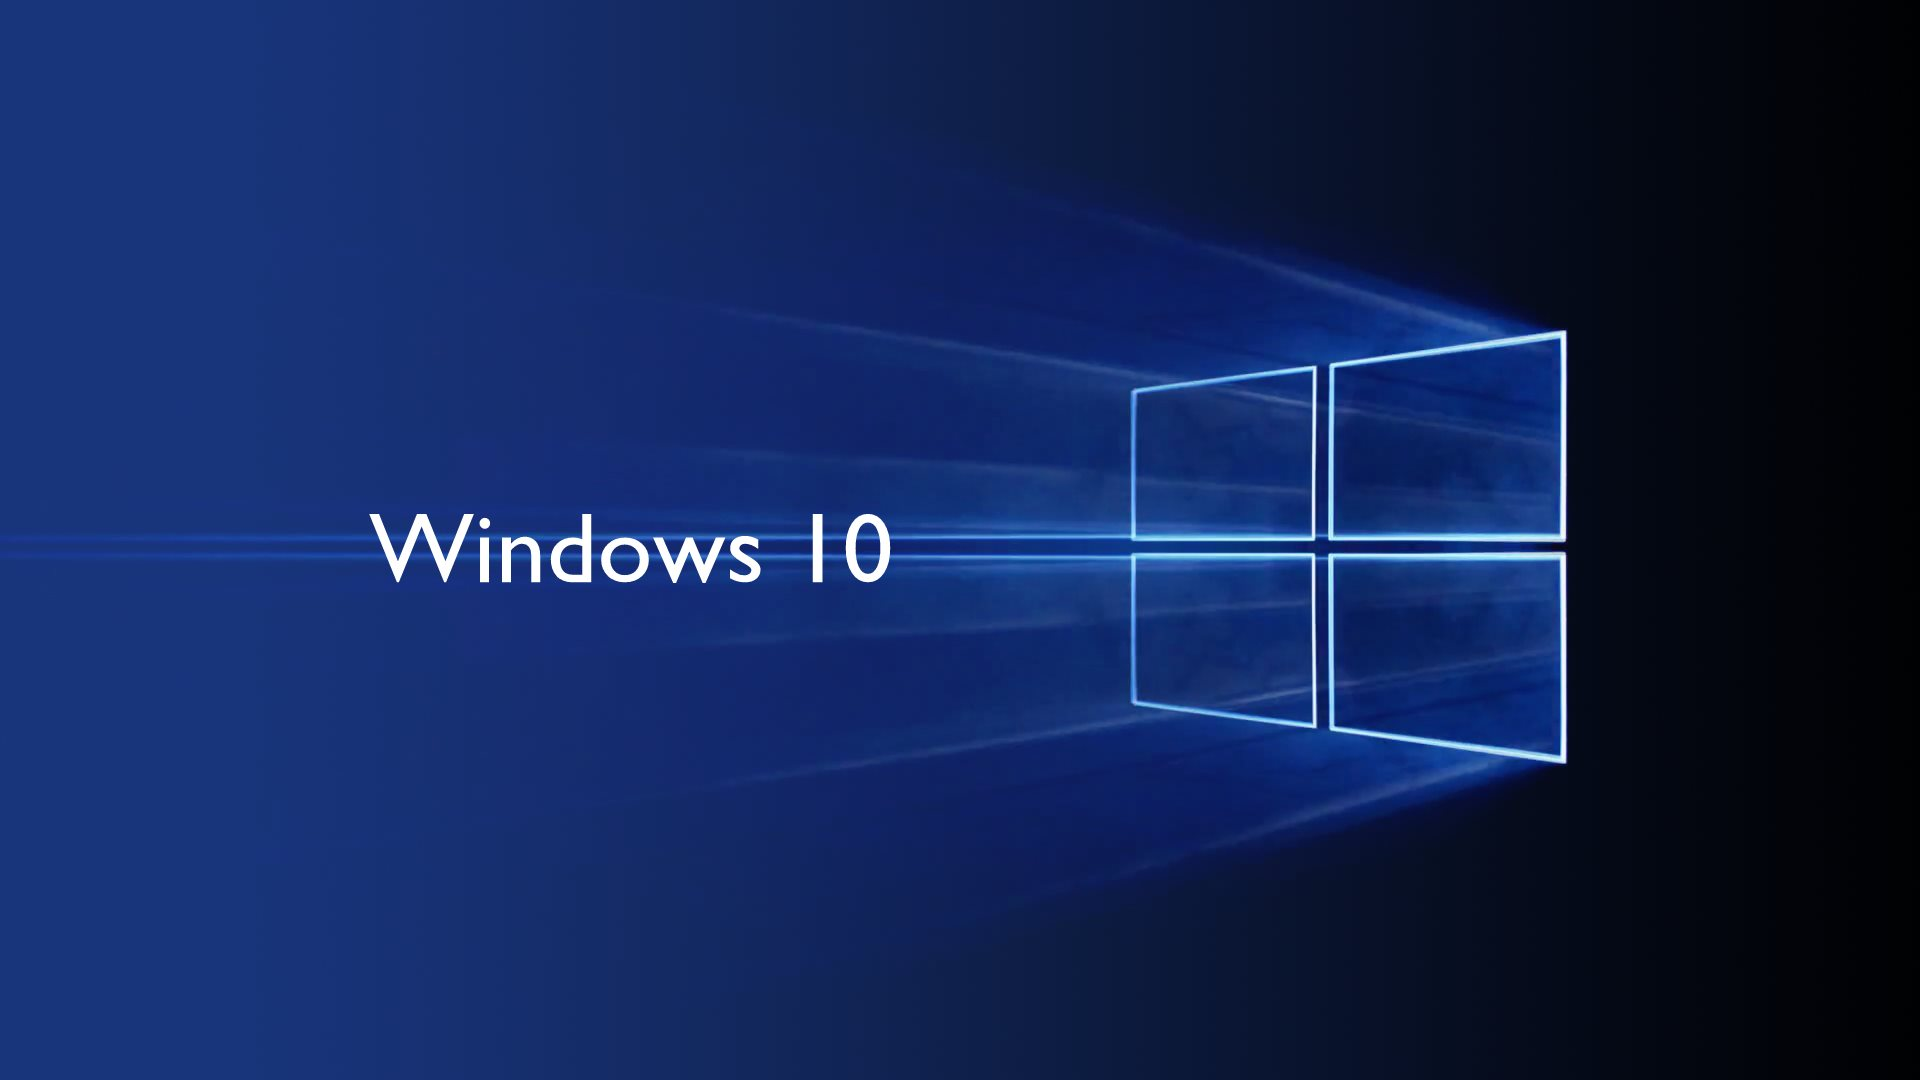 Microsoft Says Windows 10 Breaks All Records Is The Best Ever